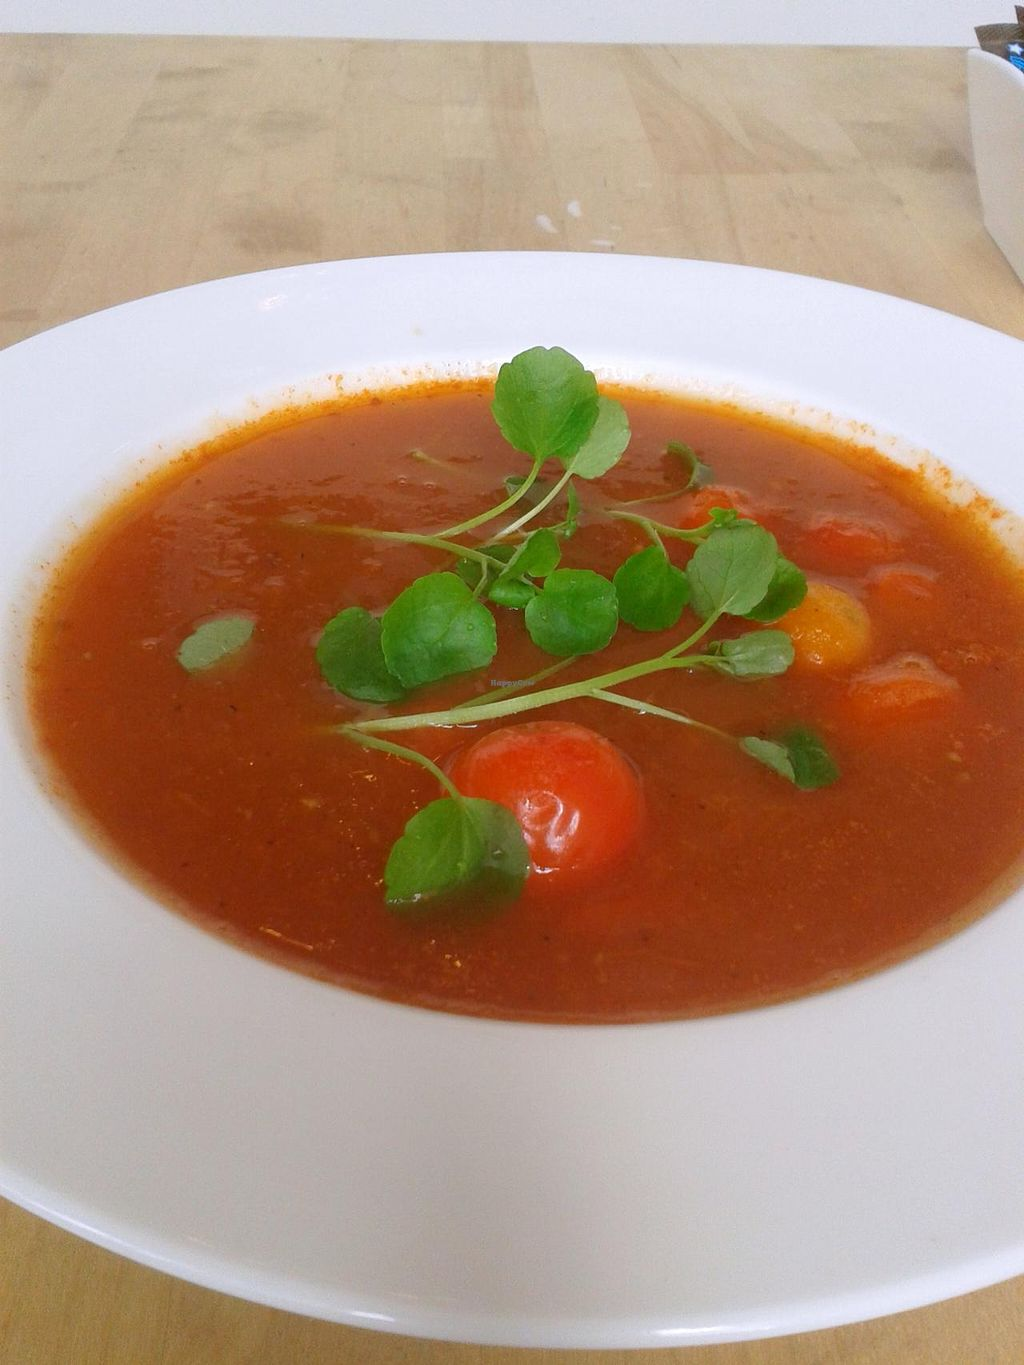 """Photo of Kava  by <a href=""""/members/profile/KavaKafe"""">KavaKafe</a> <br/>Fragrant Tomato Soup <br/> April 20, 2014  - <a href='/contact/abuse/image/41090/68042'>Report</a>"""